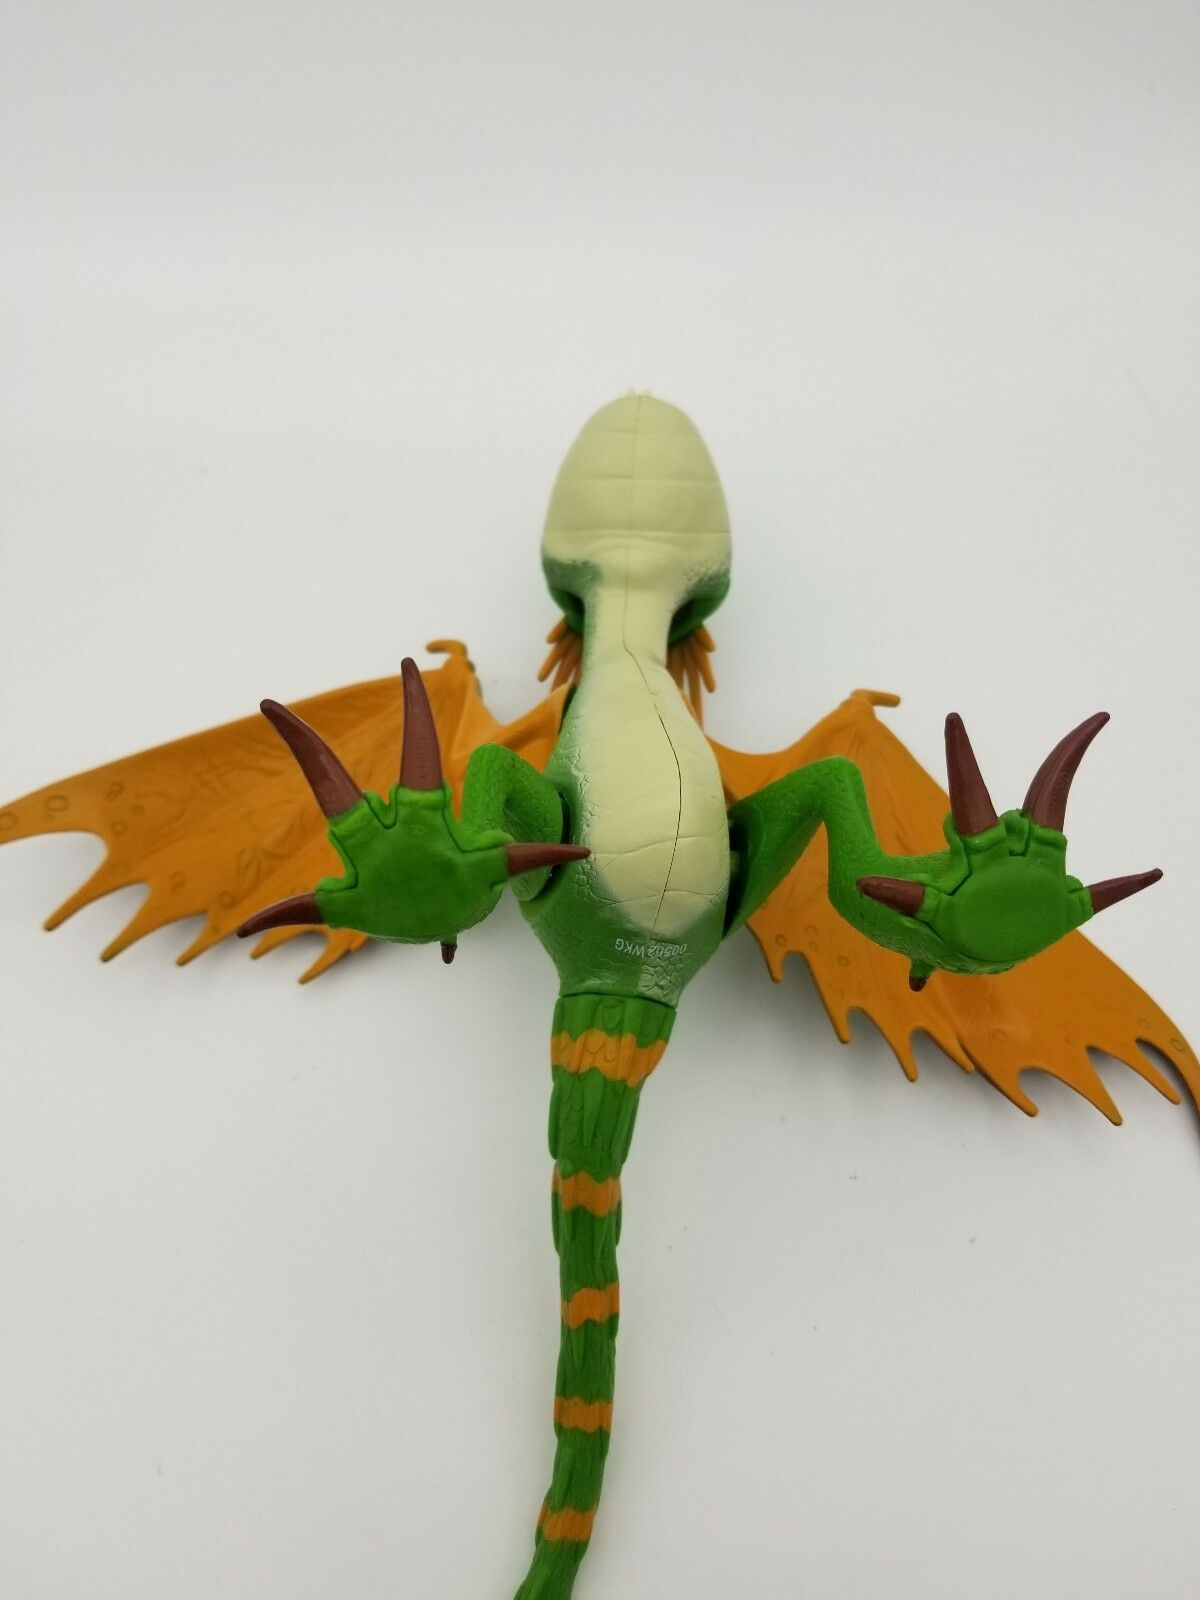 RARE Green Deadly Nadder How How How To Train Your Dragon Stormfly 2010 ca7934